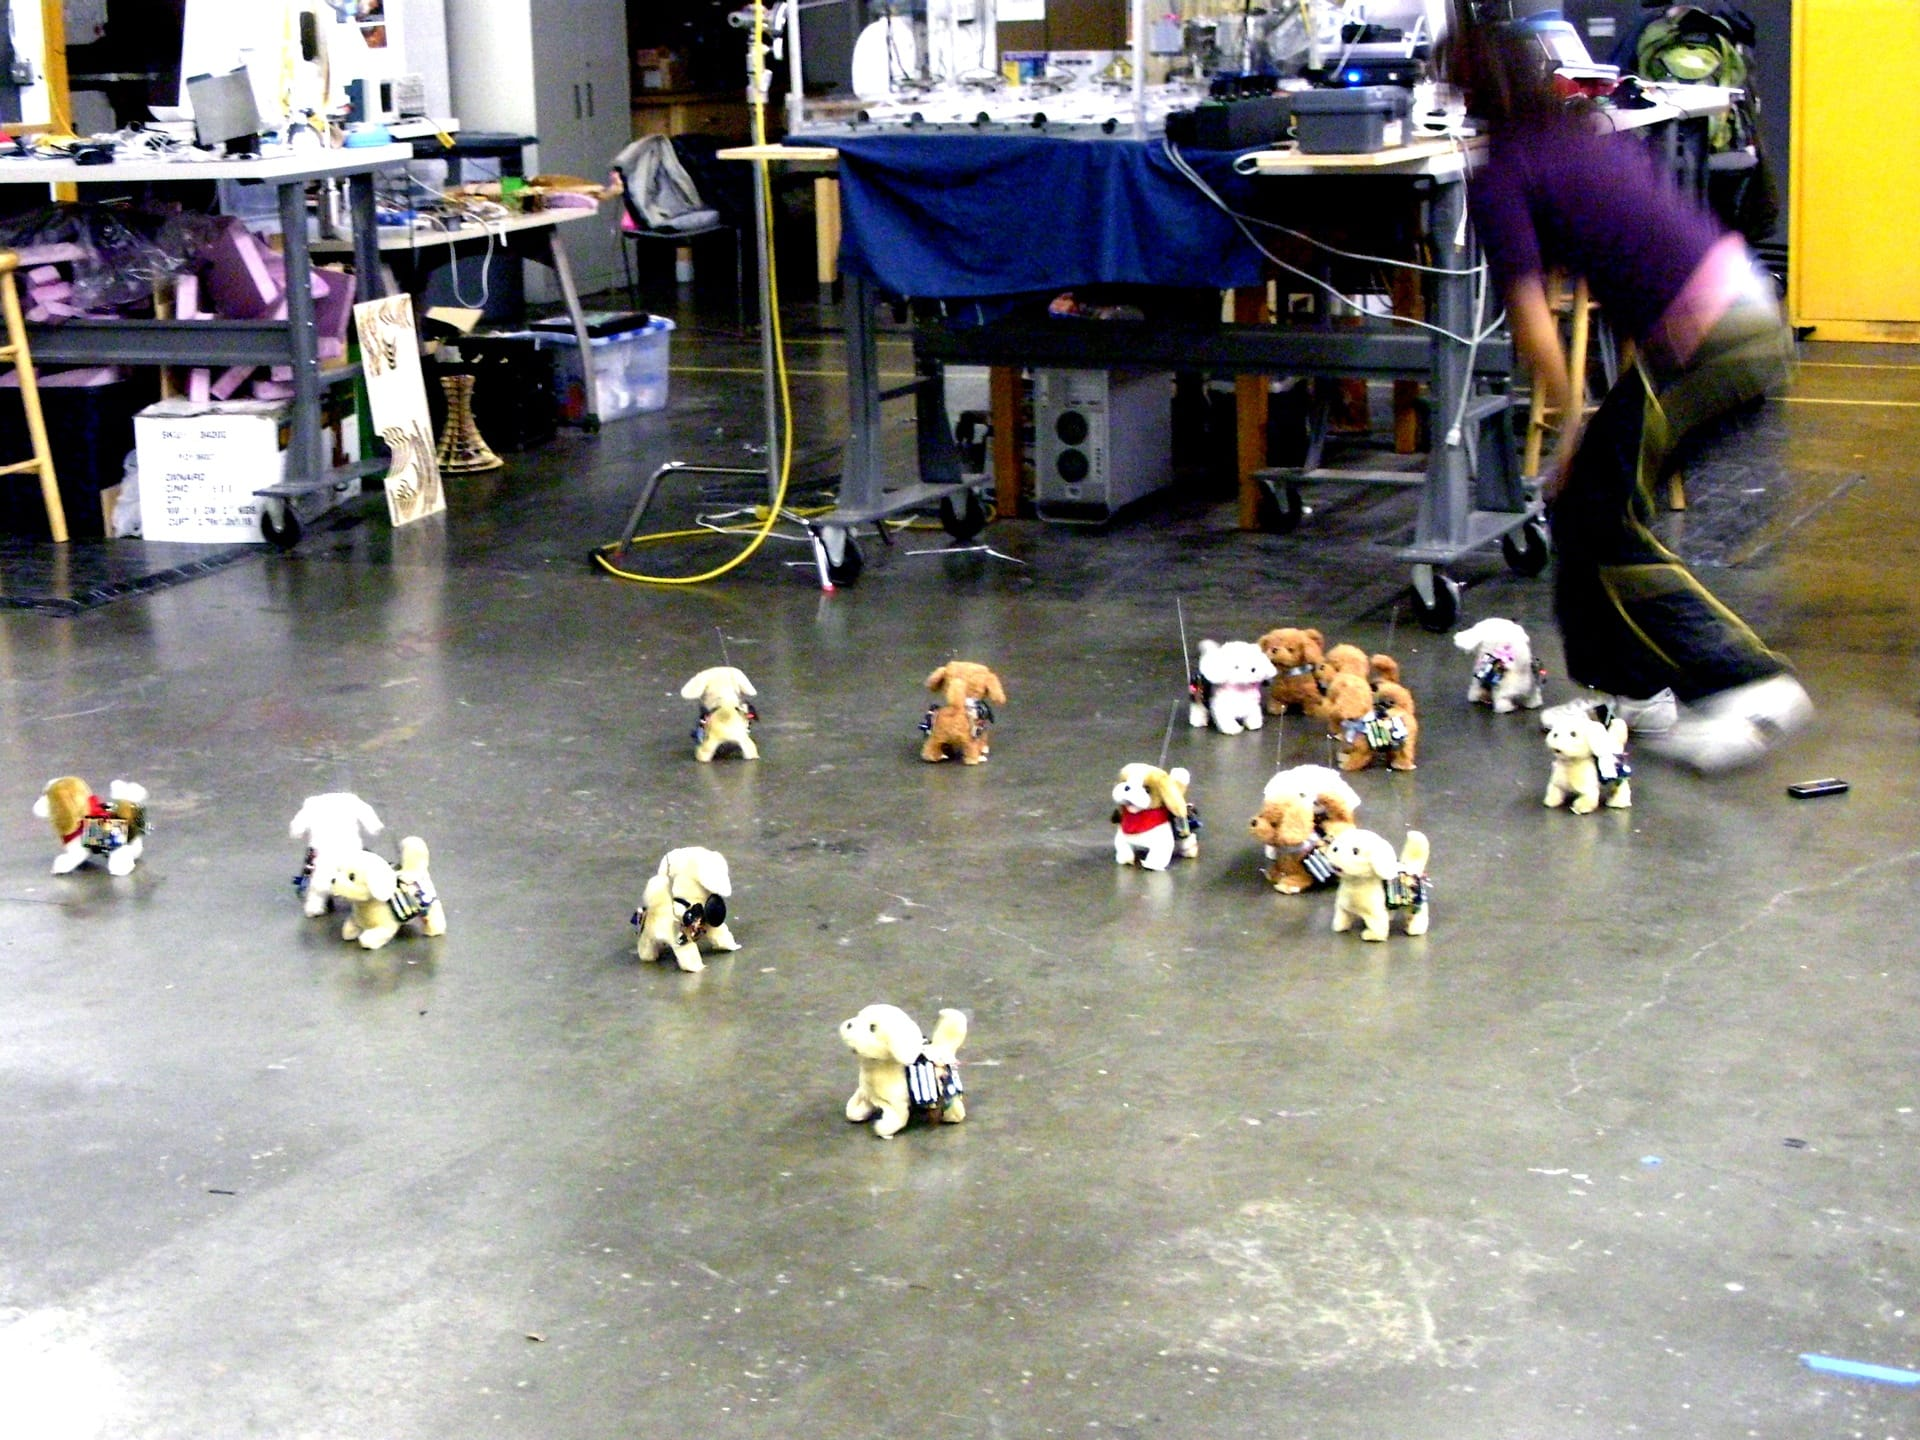 Have robot dog, will travel – dogs with electronics test _157_1920px